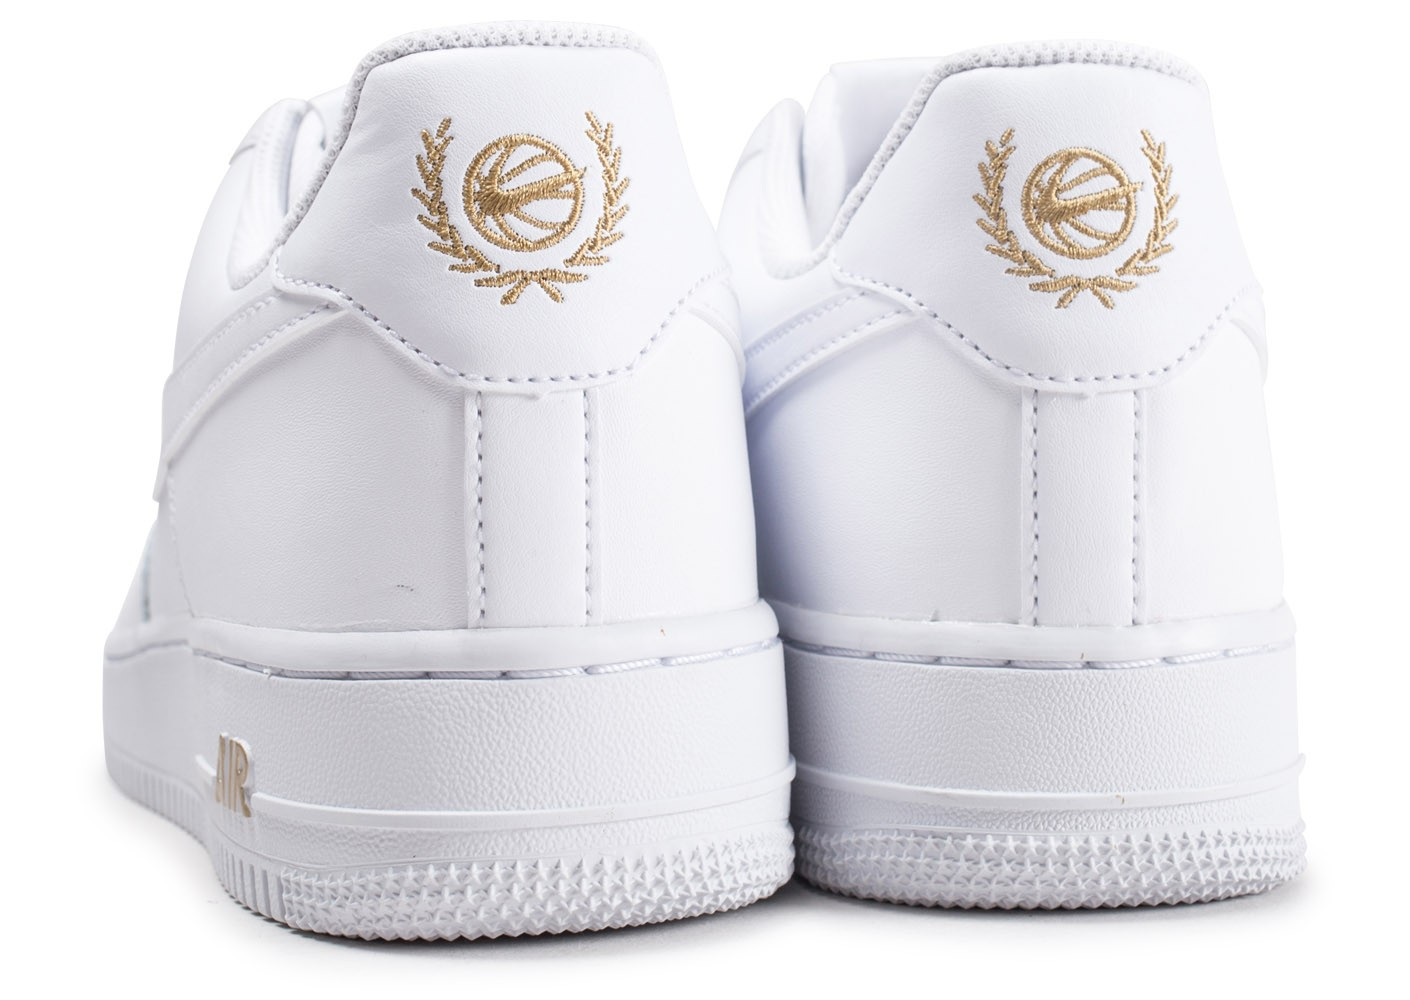 bas prix f58a7 f6623 Nike Air Force 1 '07 Low Blanche et or - Chaussures Baskets ...